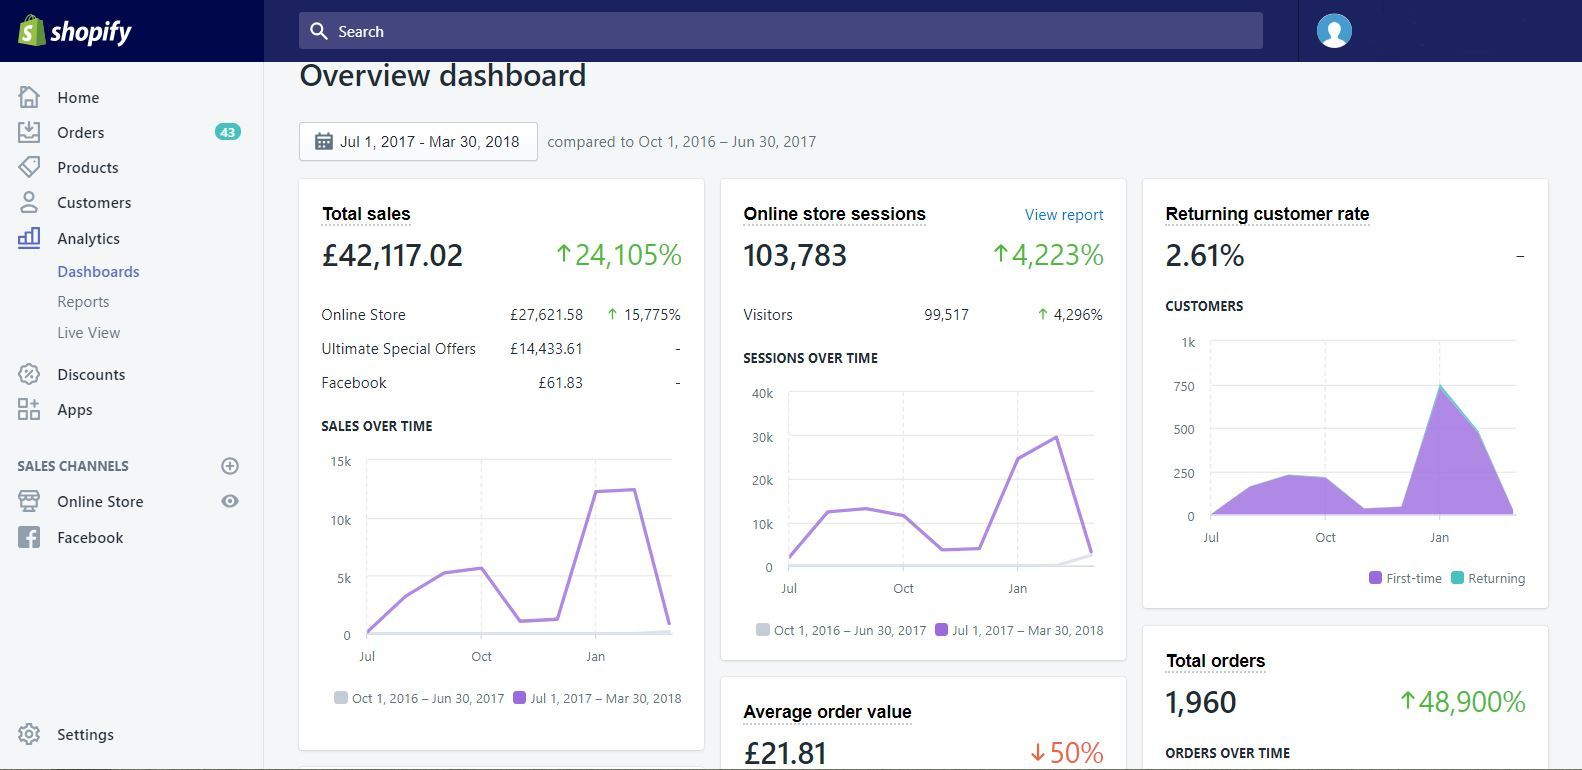 She's Yup *HUGE POTENTIAL 15K Monthly Easily *Baby, Women, General Store * Optimized for Mobile Shopping ! Screenshot - 2